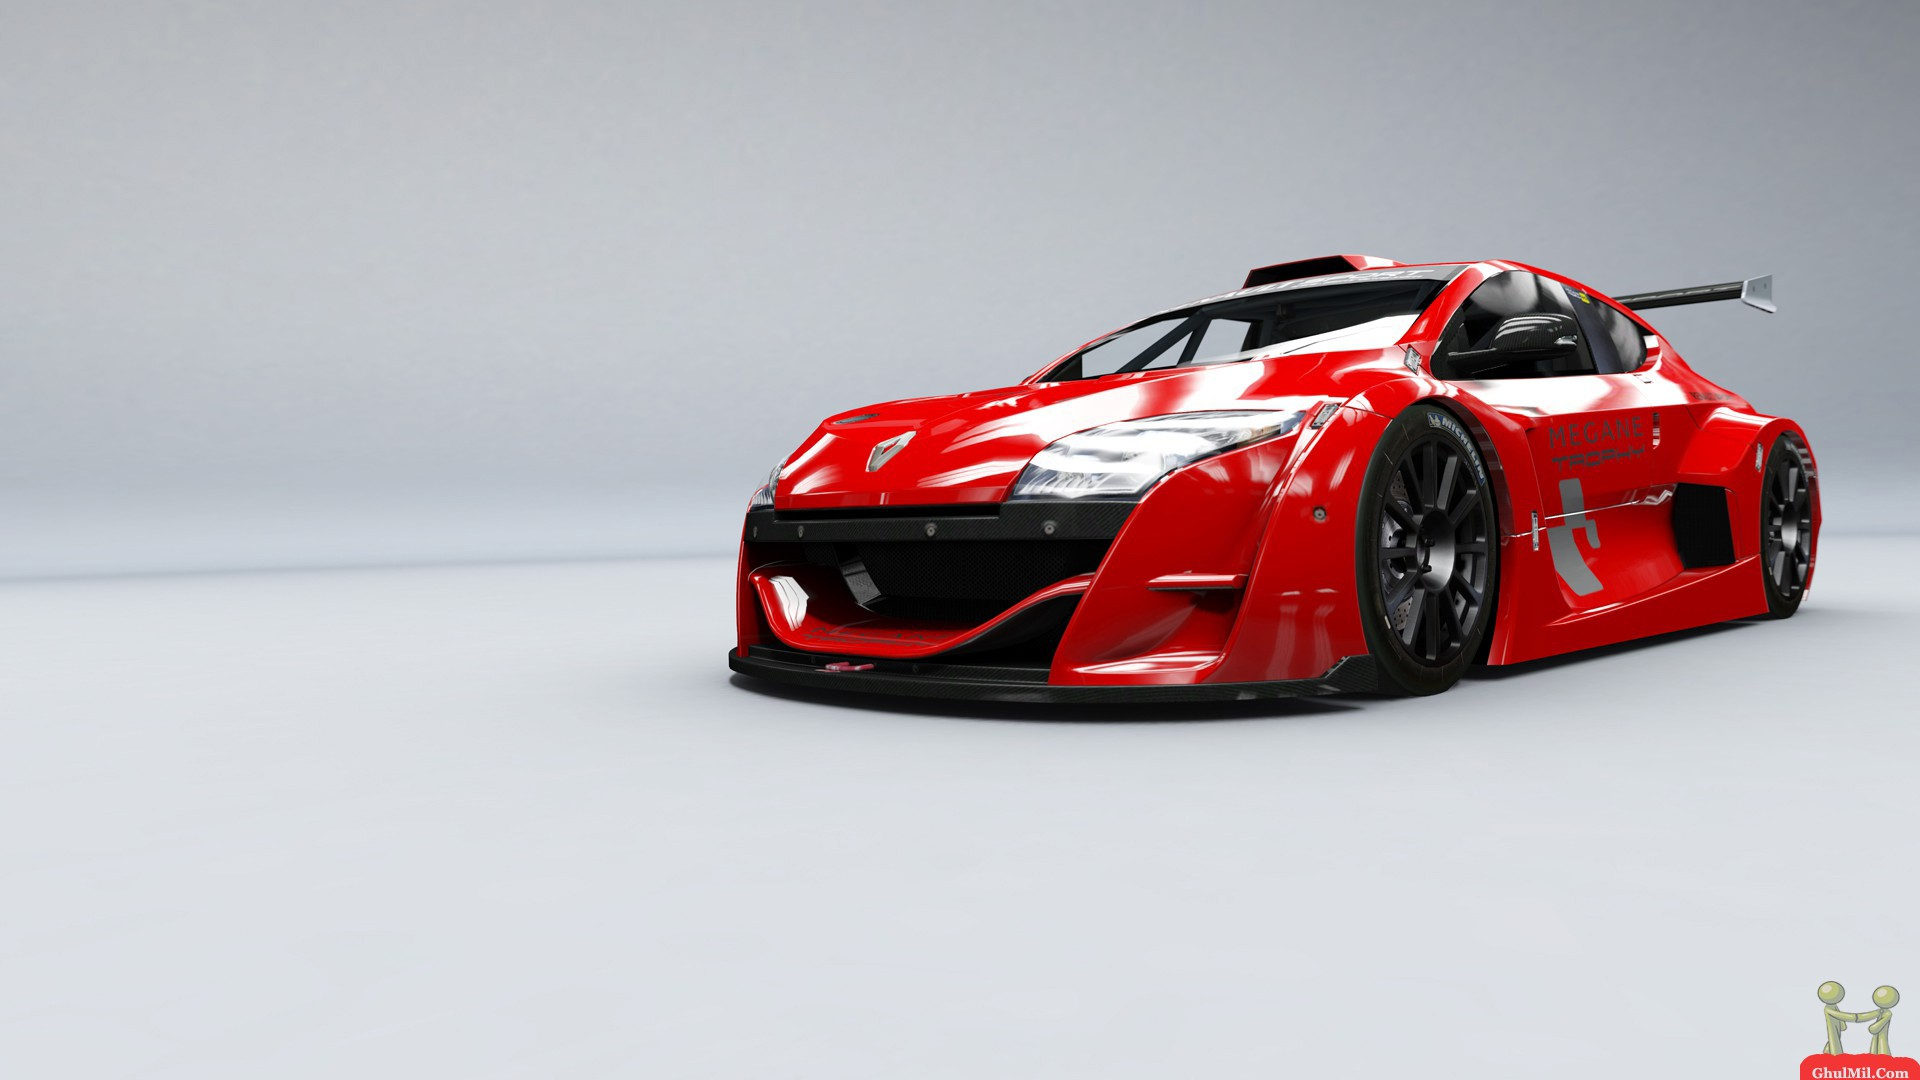 Cool Racing Cars Wallpapers Amazing Racing Cars 1920x1080